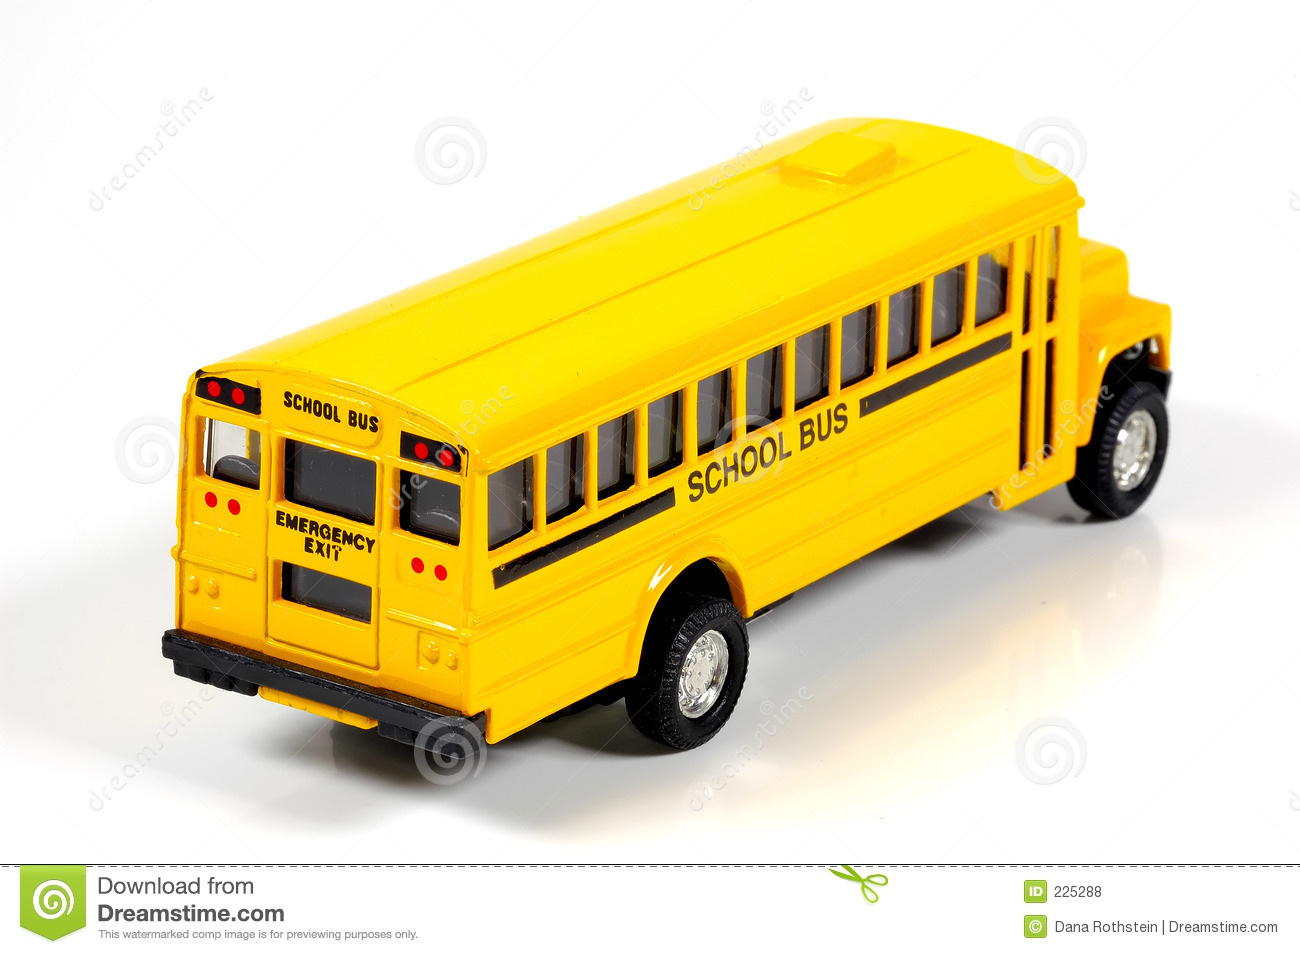 Download School Bus stock photo. Image of afternoon, arrival, learn - 225288